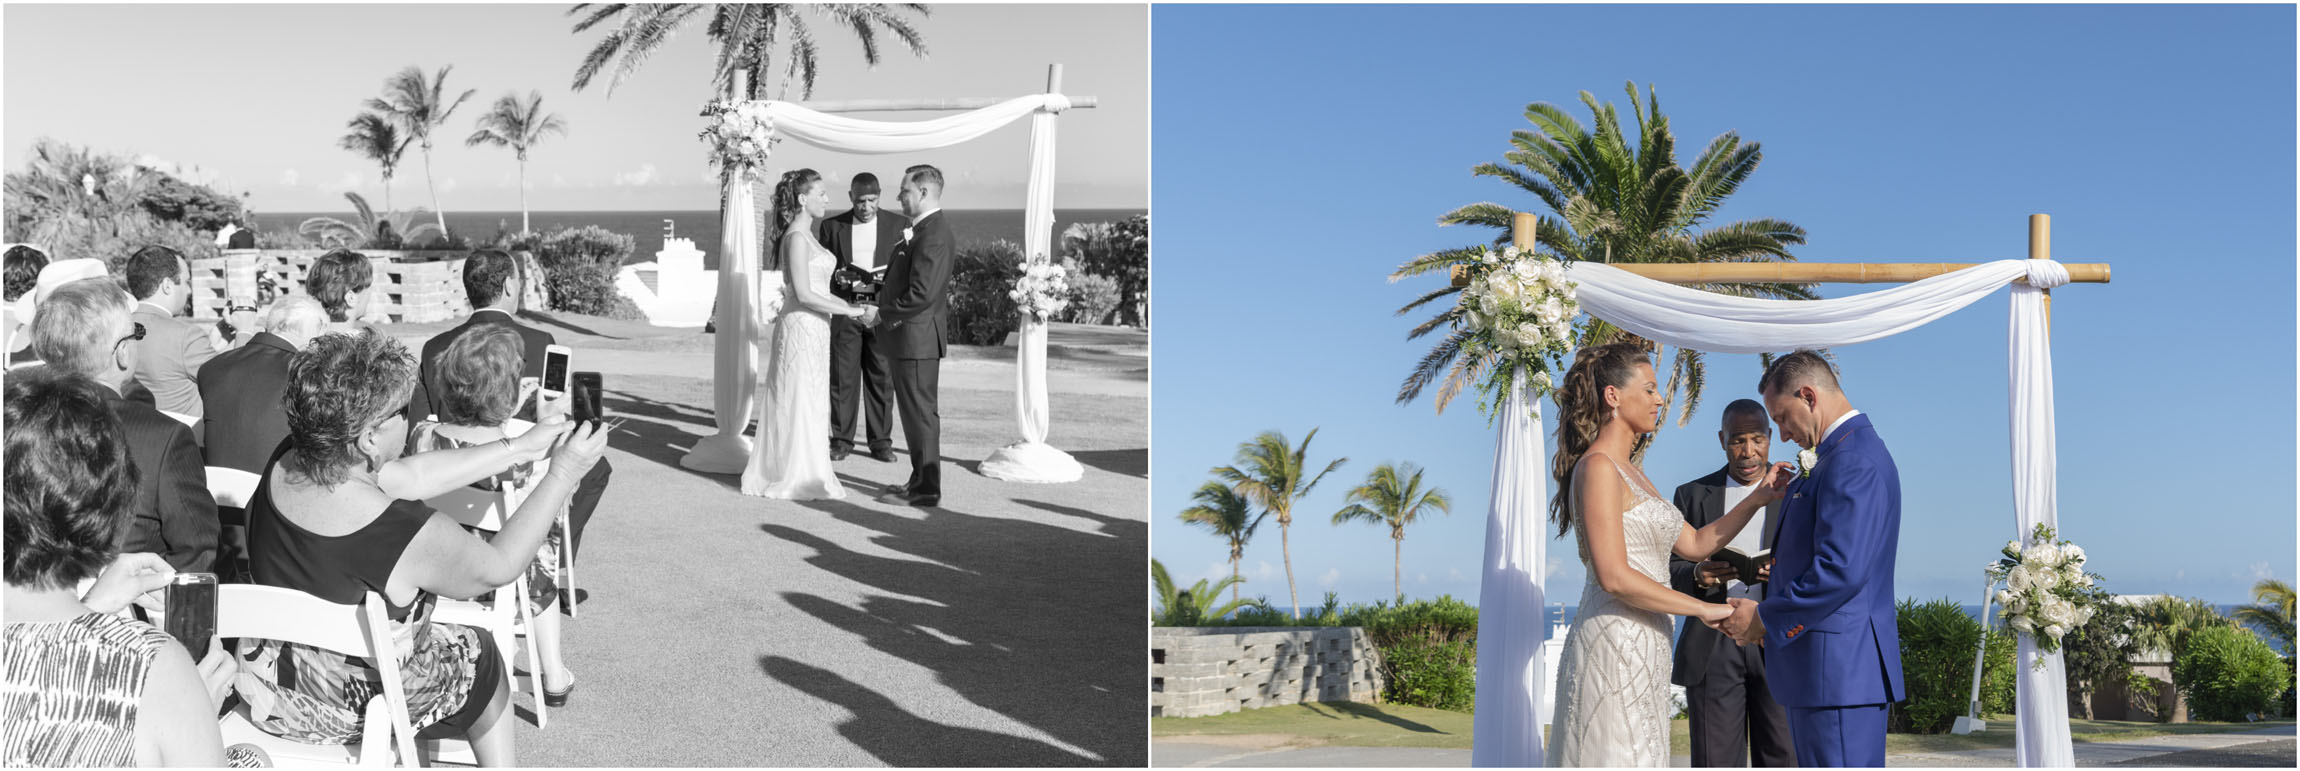 ©FianderFoto_Catherine_Kenny_Coral Beach Wedding_160.jpg